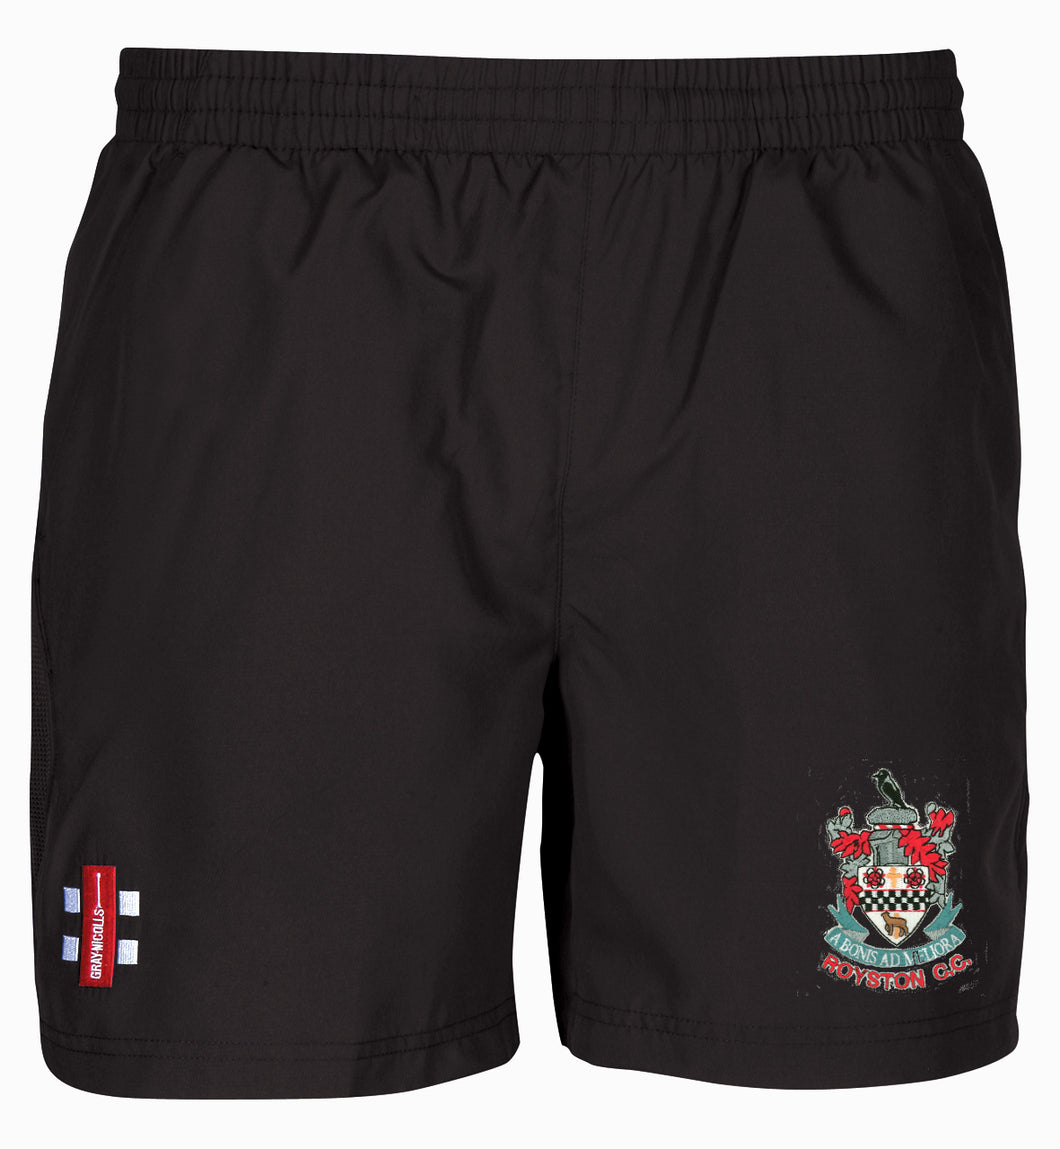 Royston CC Junior Storm Shorts - The Incredible Cricket Company